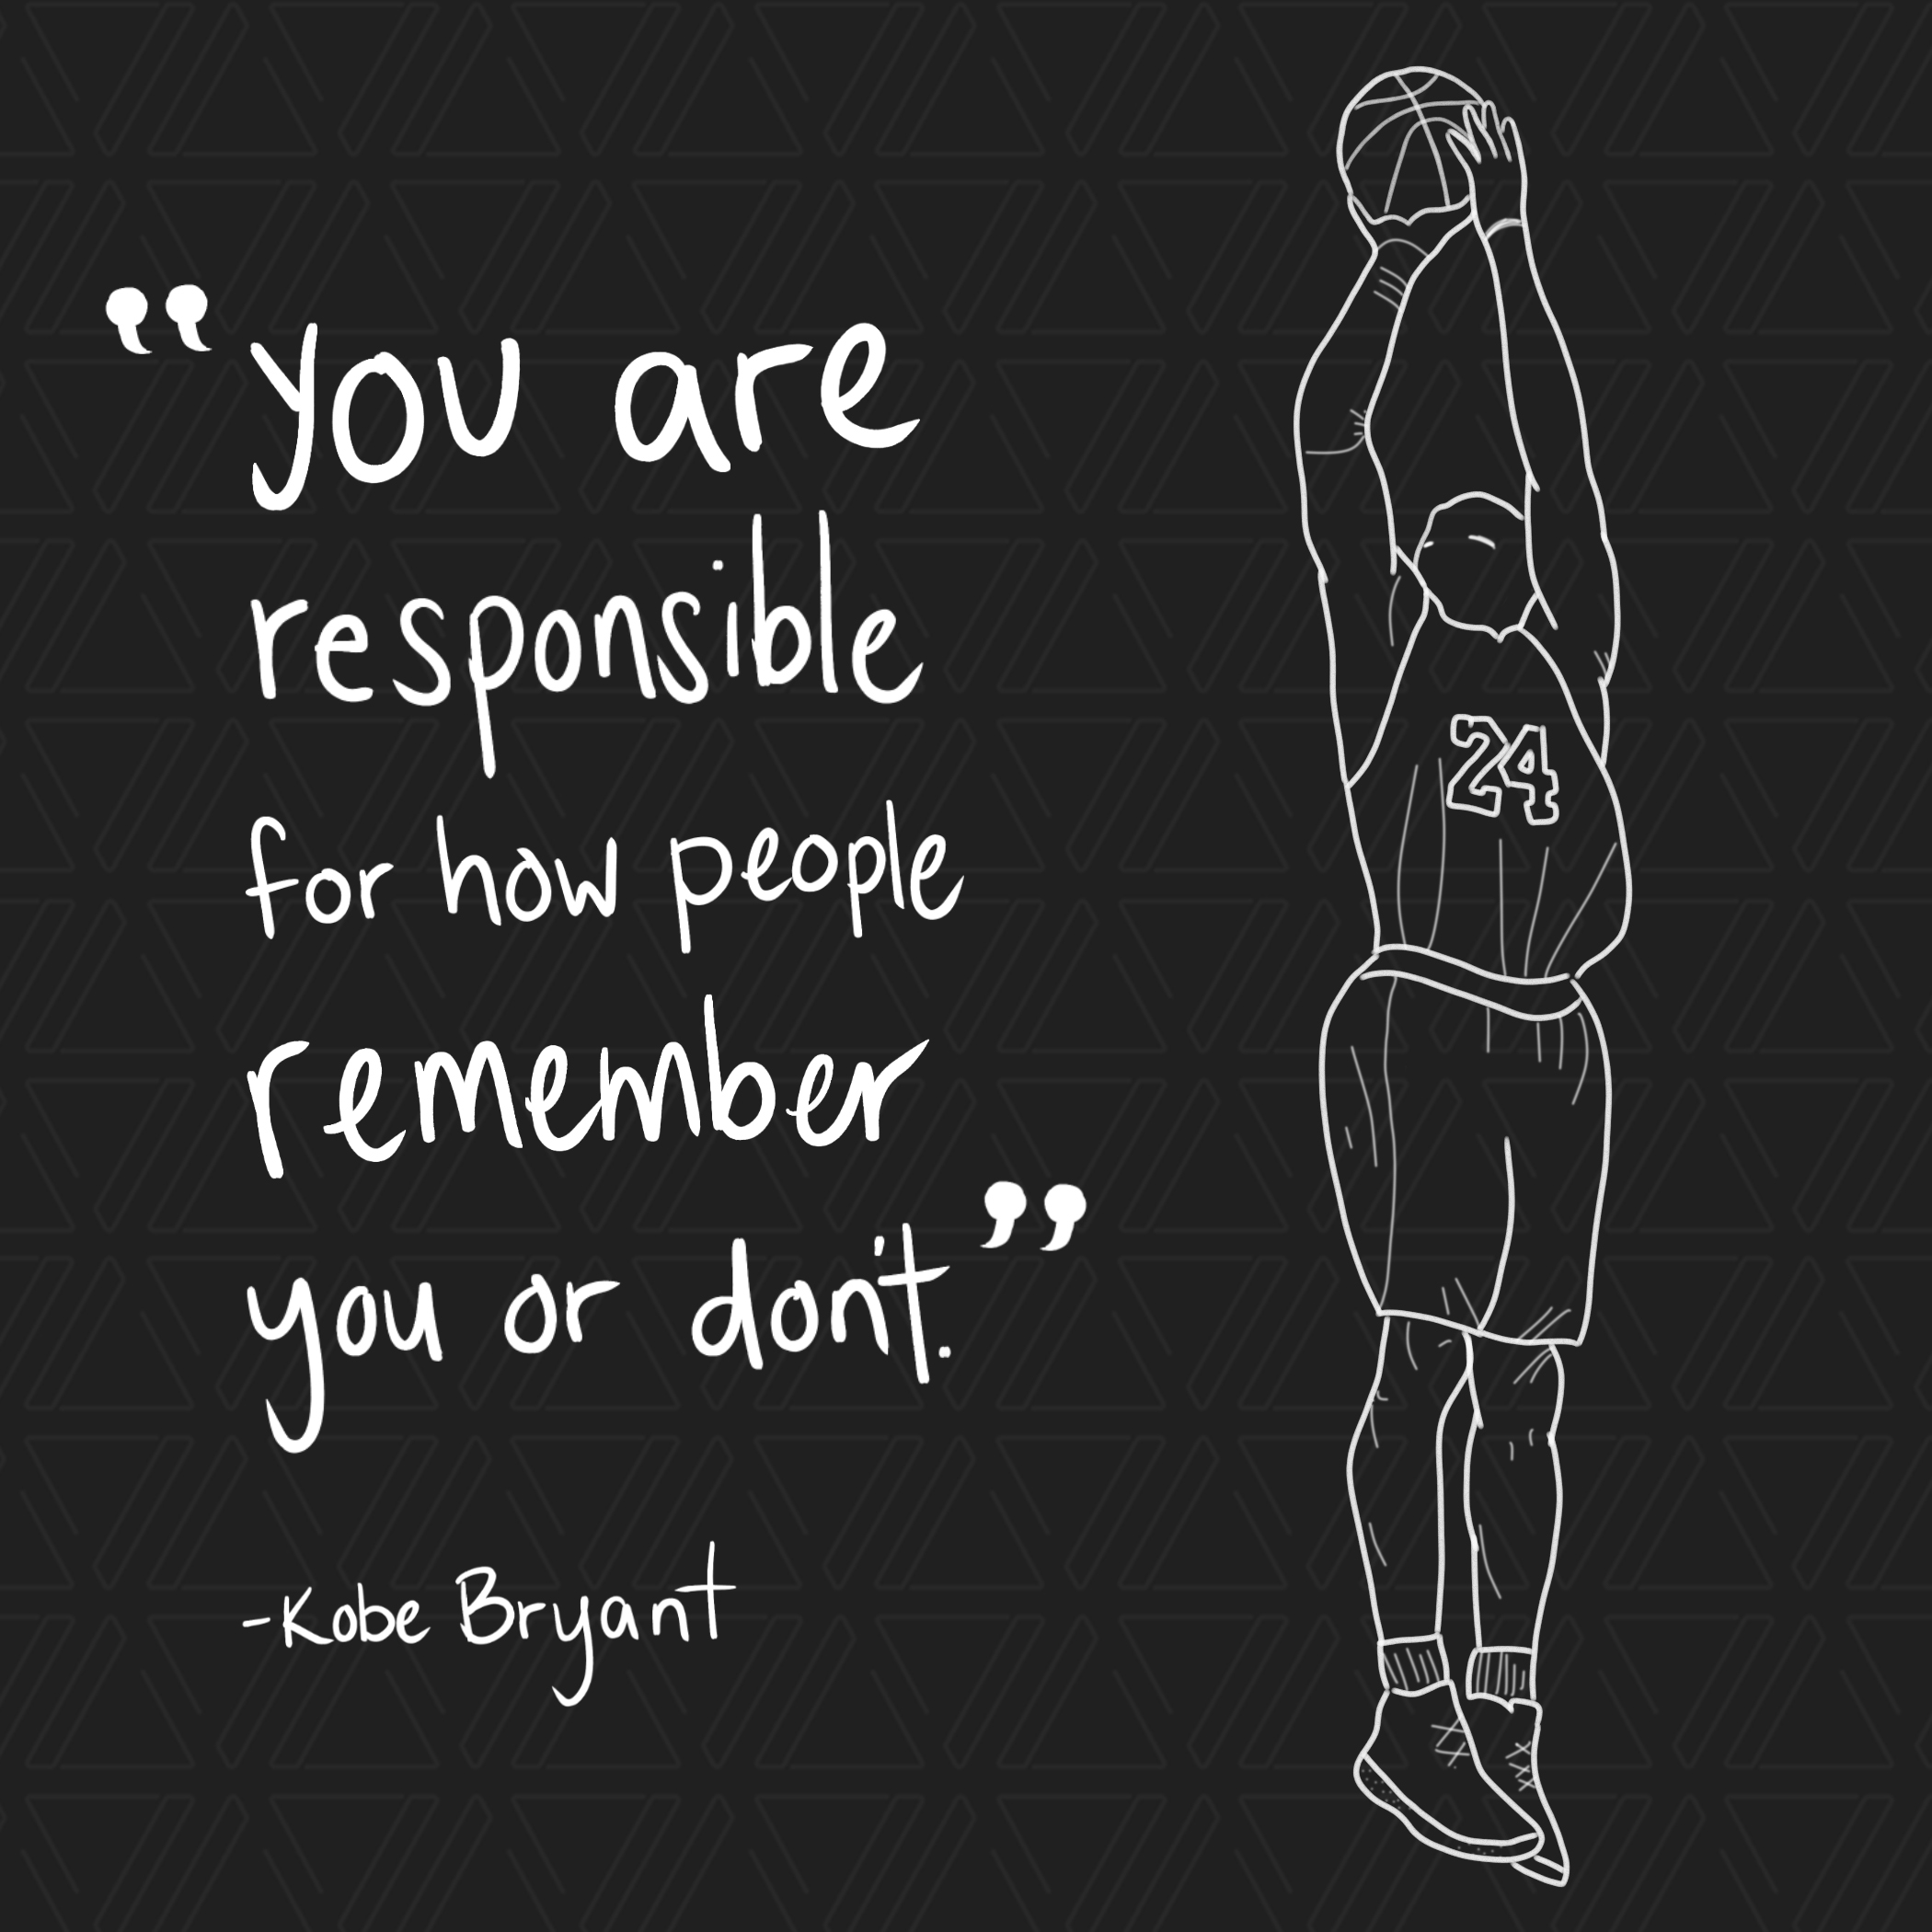 You are responsible for how people remember you or don't. -Kobe Bryant